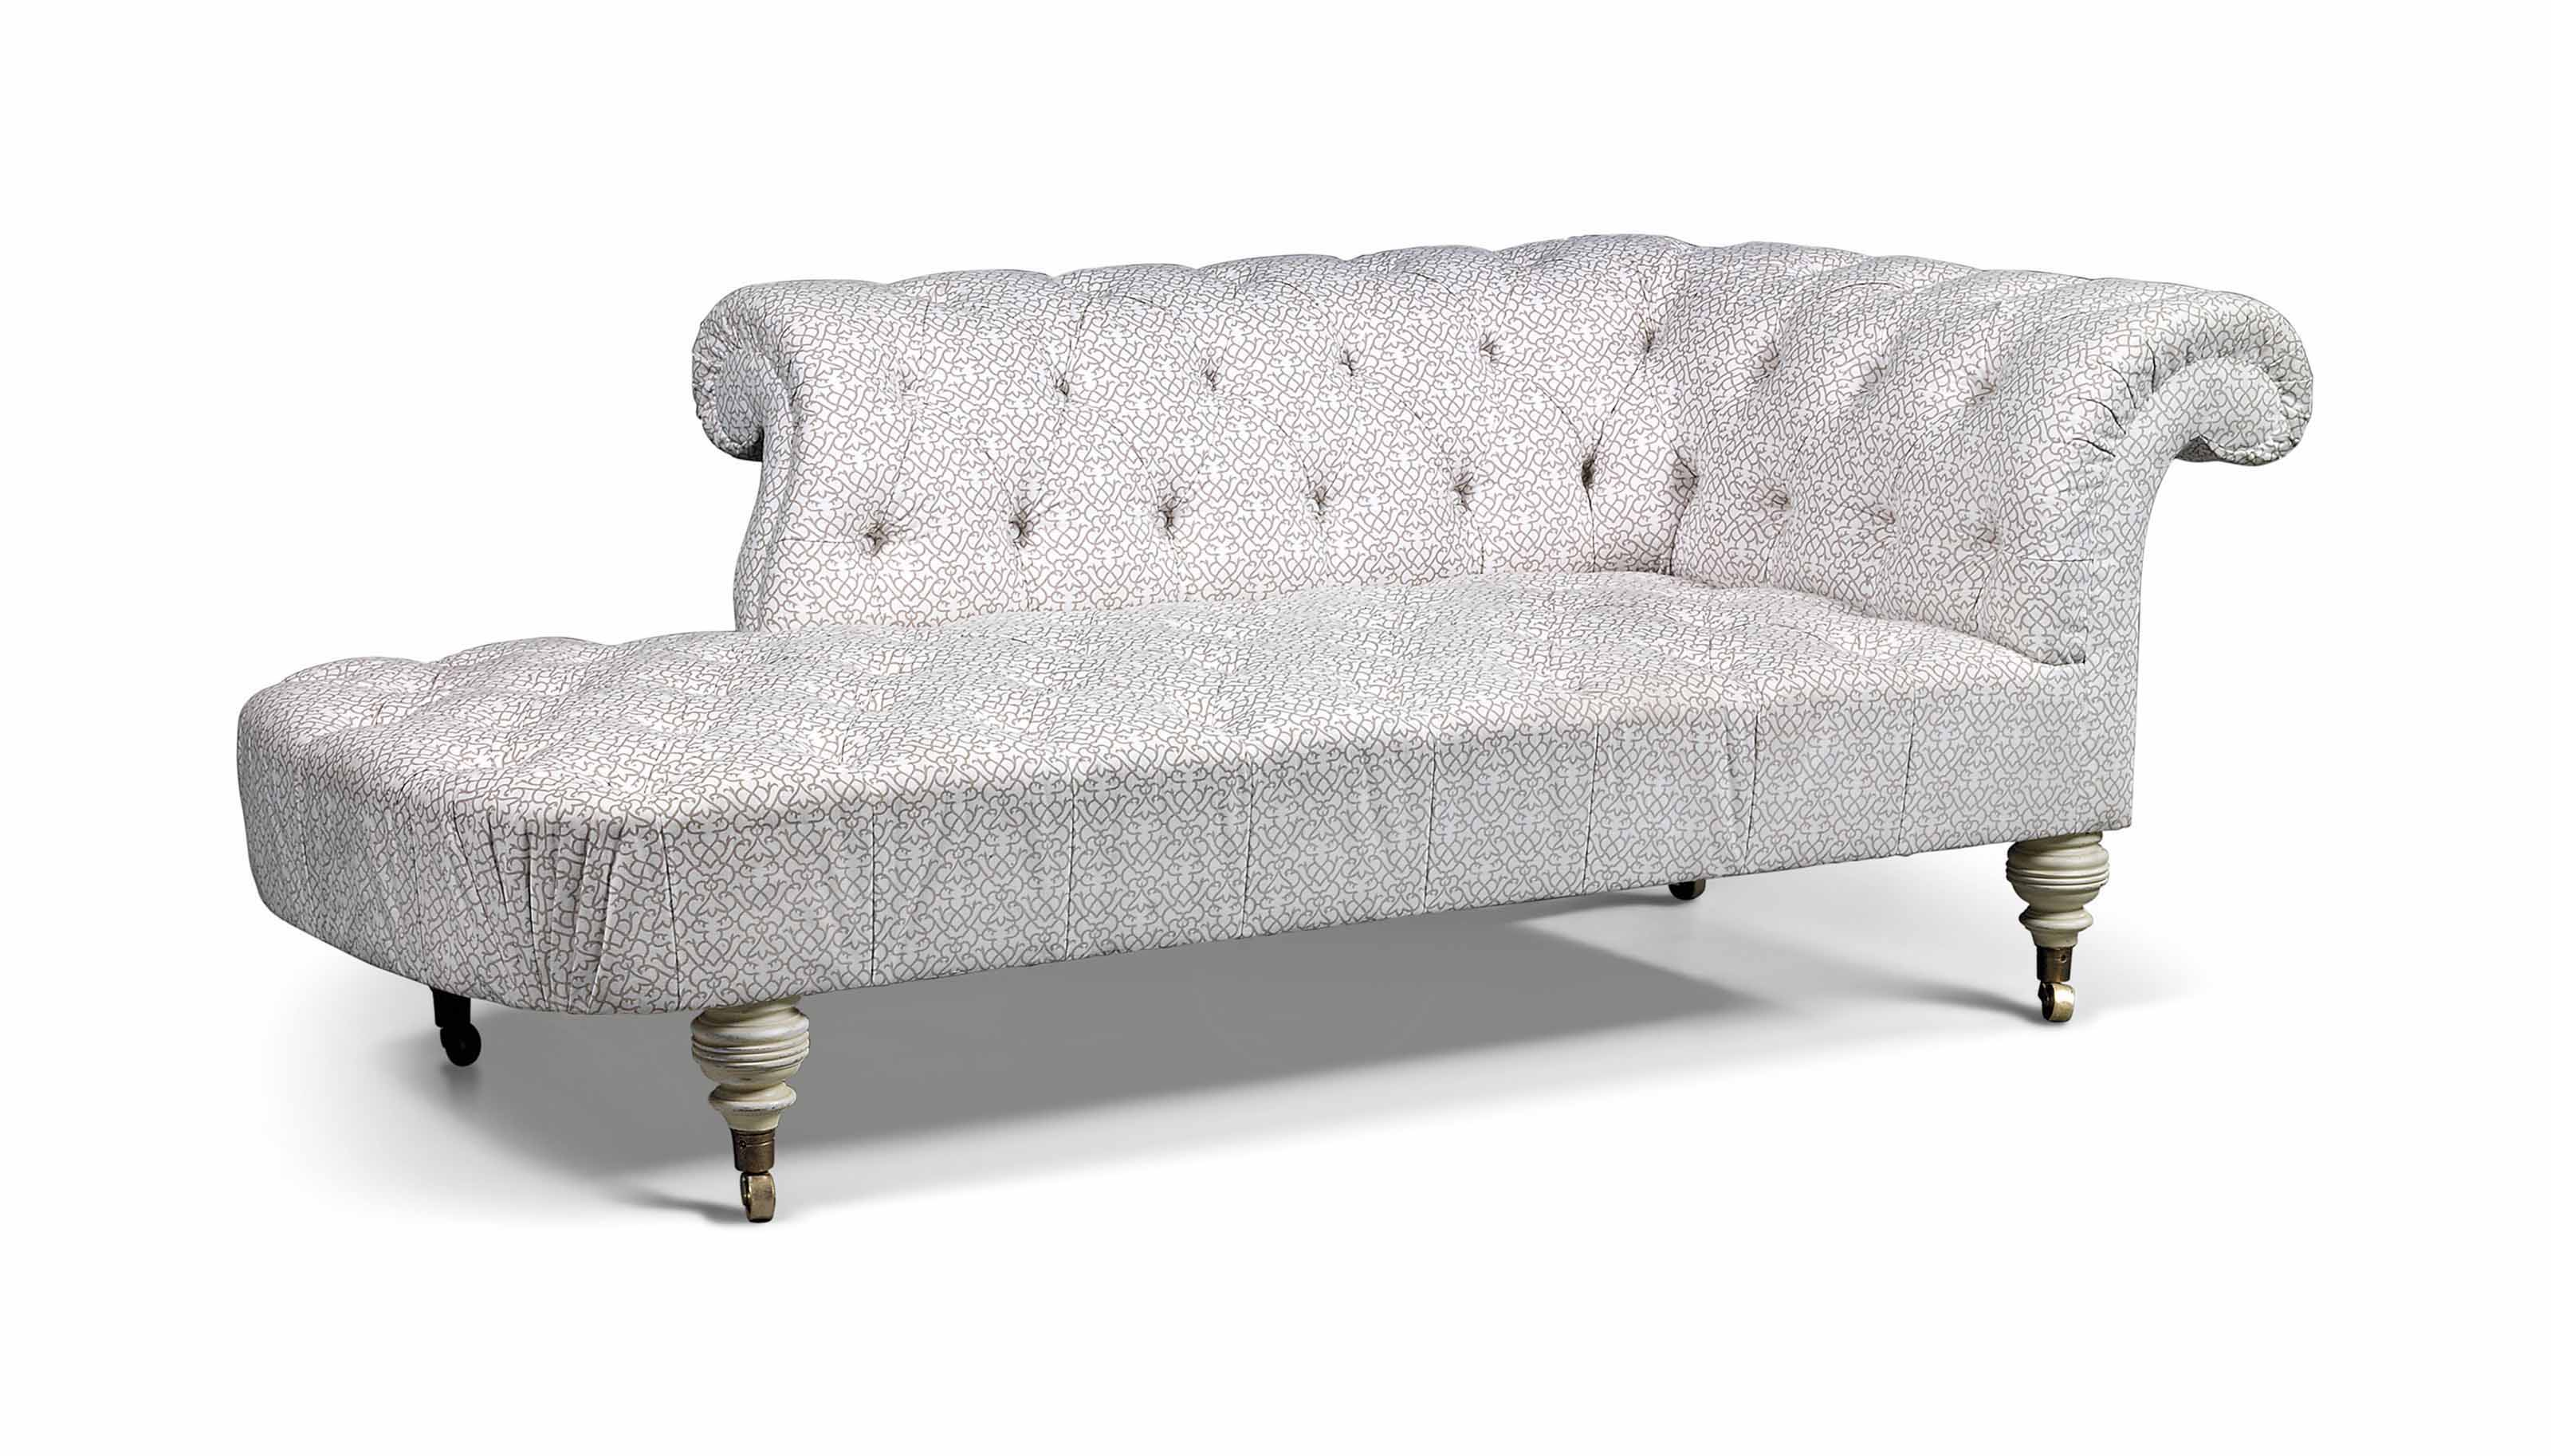 A WHITE-PAINTED 'CHESTERBED' CHAISE LONGUE